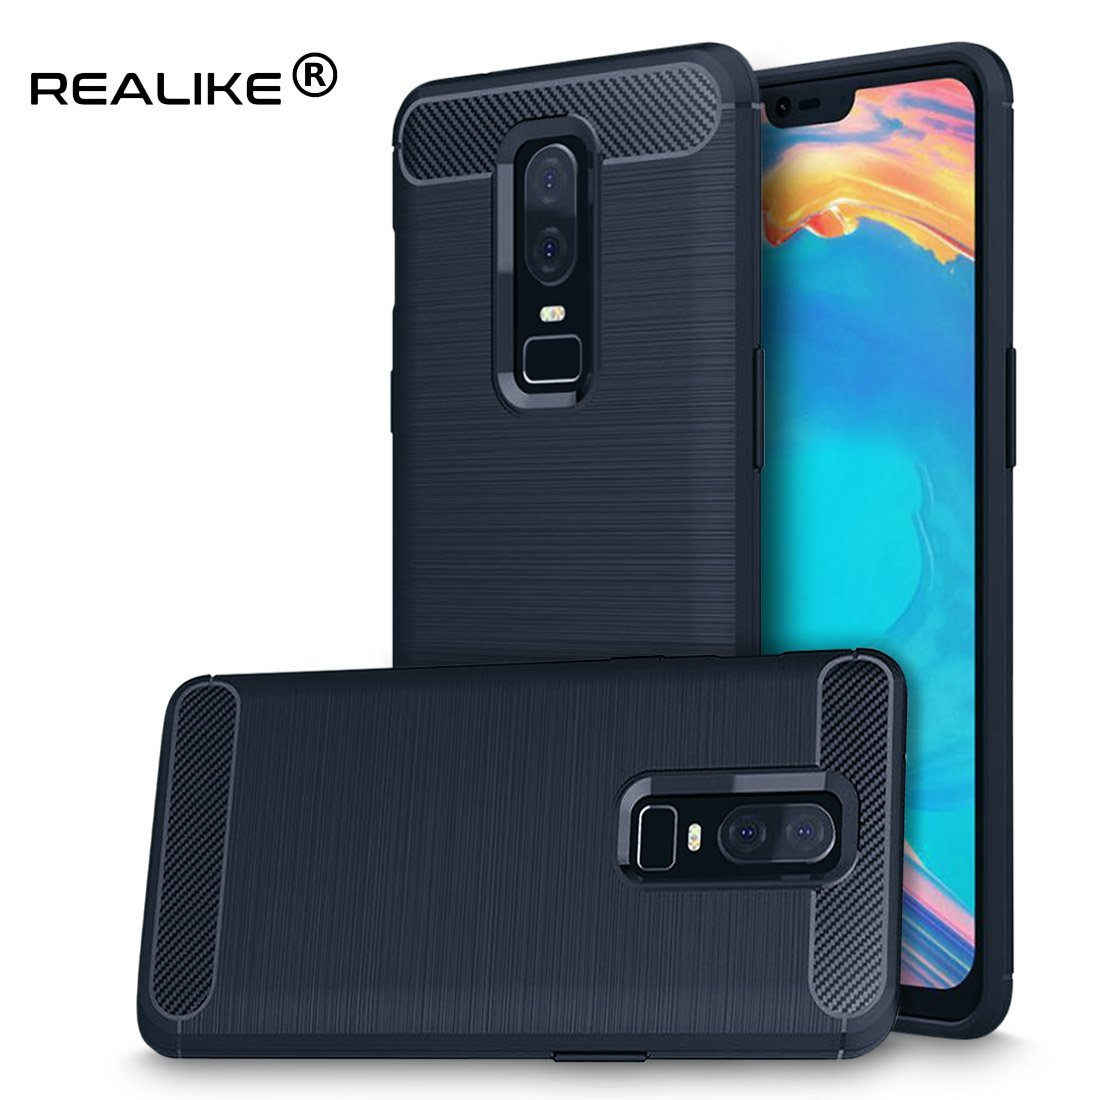 sports shoes d4699 d37e5 REALIKE® OnePlus 6 Back Cover, Beetle Series Hybrid Protective Frost Clear  Case for Oneplus Six (OnePlus 6, Carbon Blue)